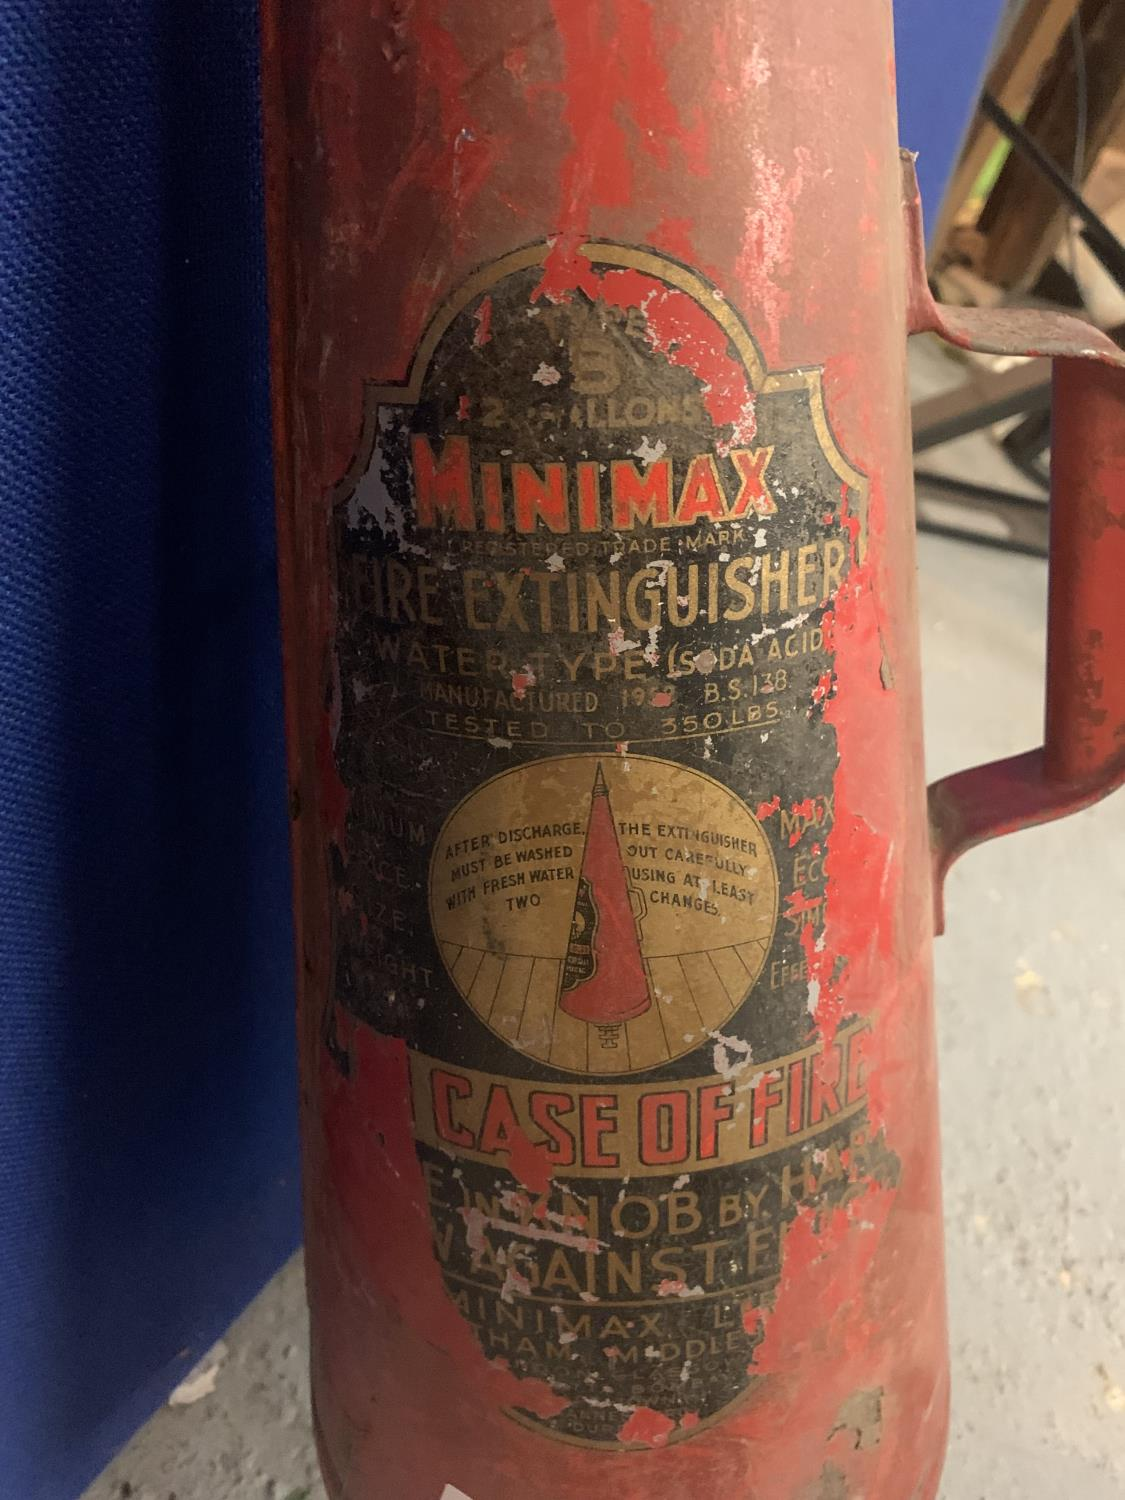 A VINTAGE CONICAL MINIMAX FIRE EXTINGUISHER - Image 2 of 4